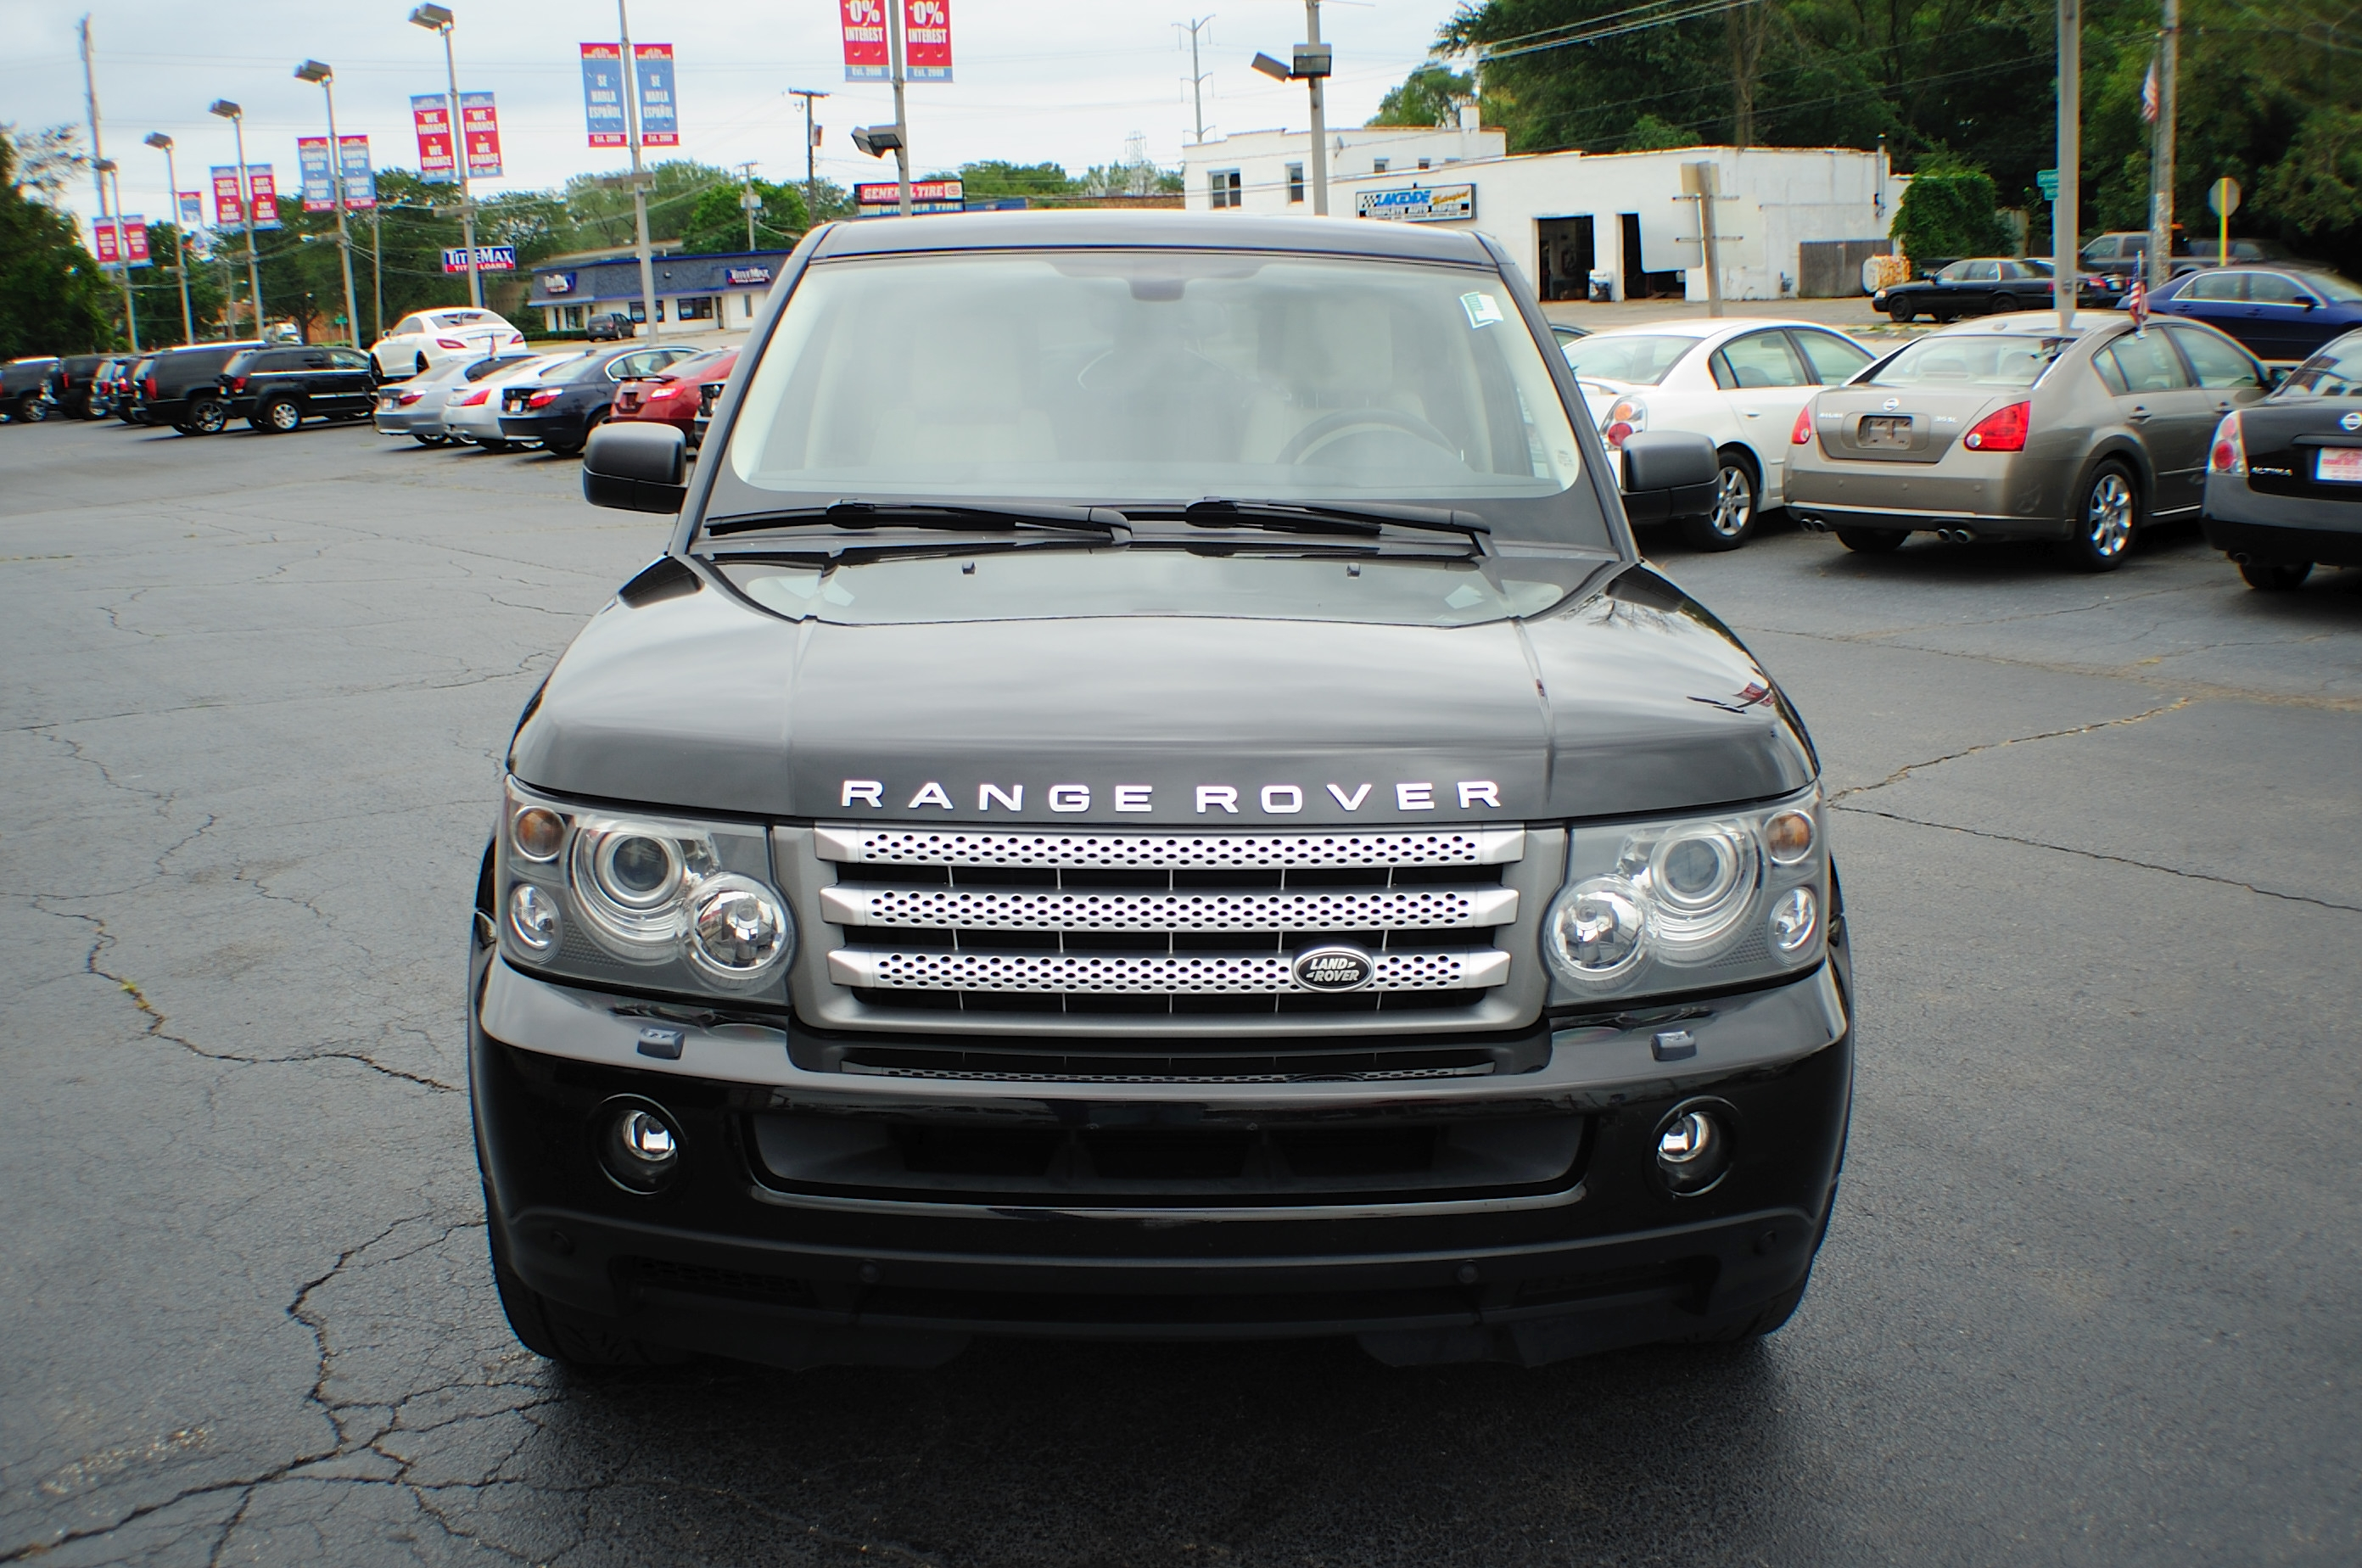 2006 Land Rover Range Rover Black Sport Supercharged Nav 4x4